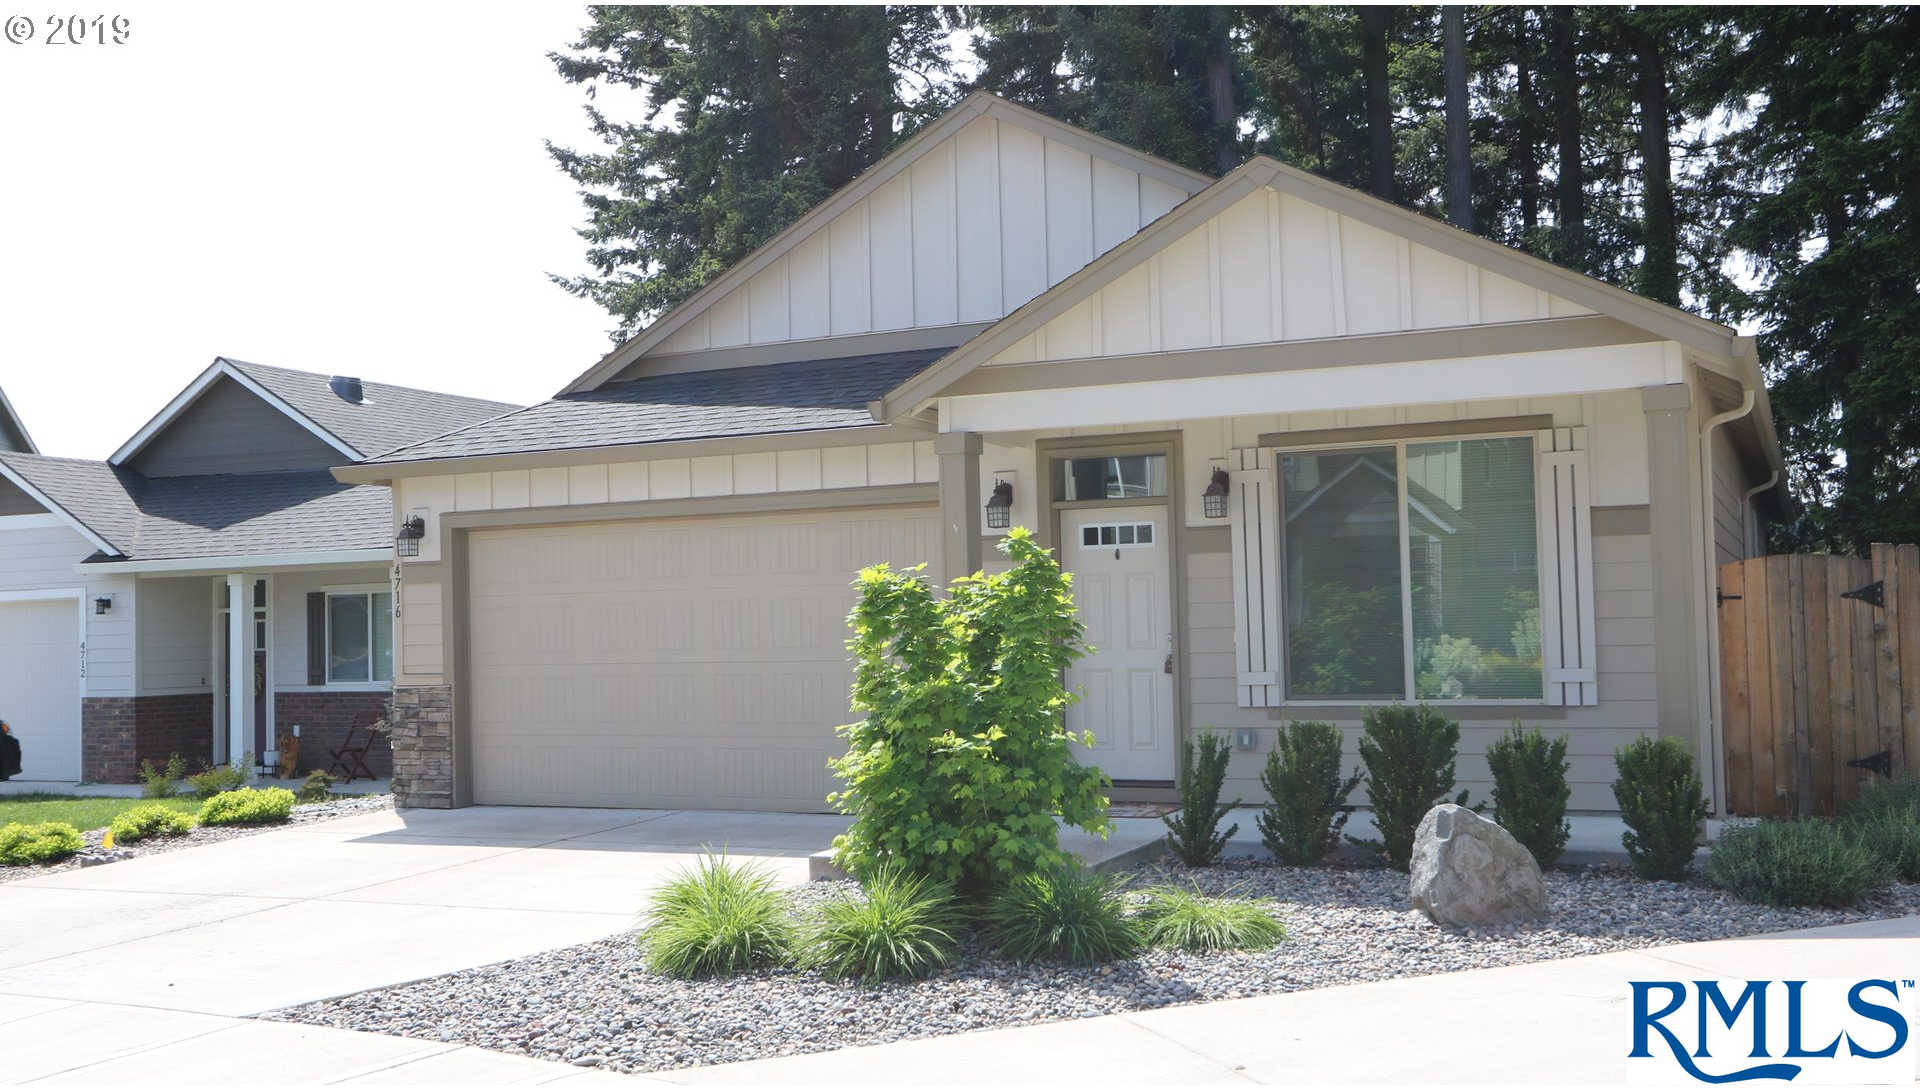 4716 NE 13TH CT, Vancouver, WA 98663 now has a new price of $344,900!